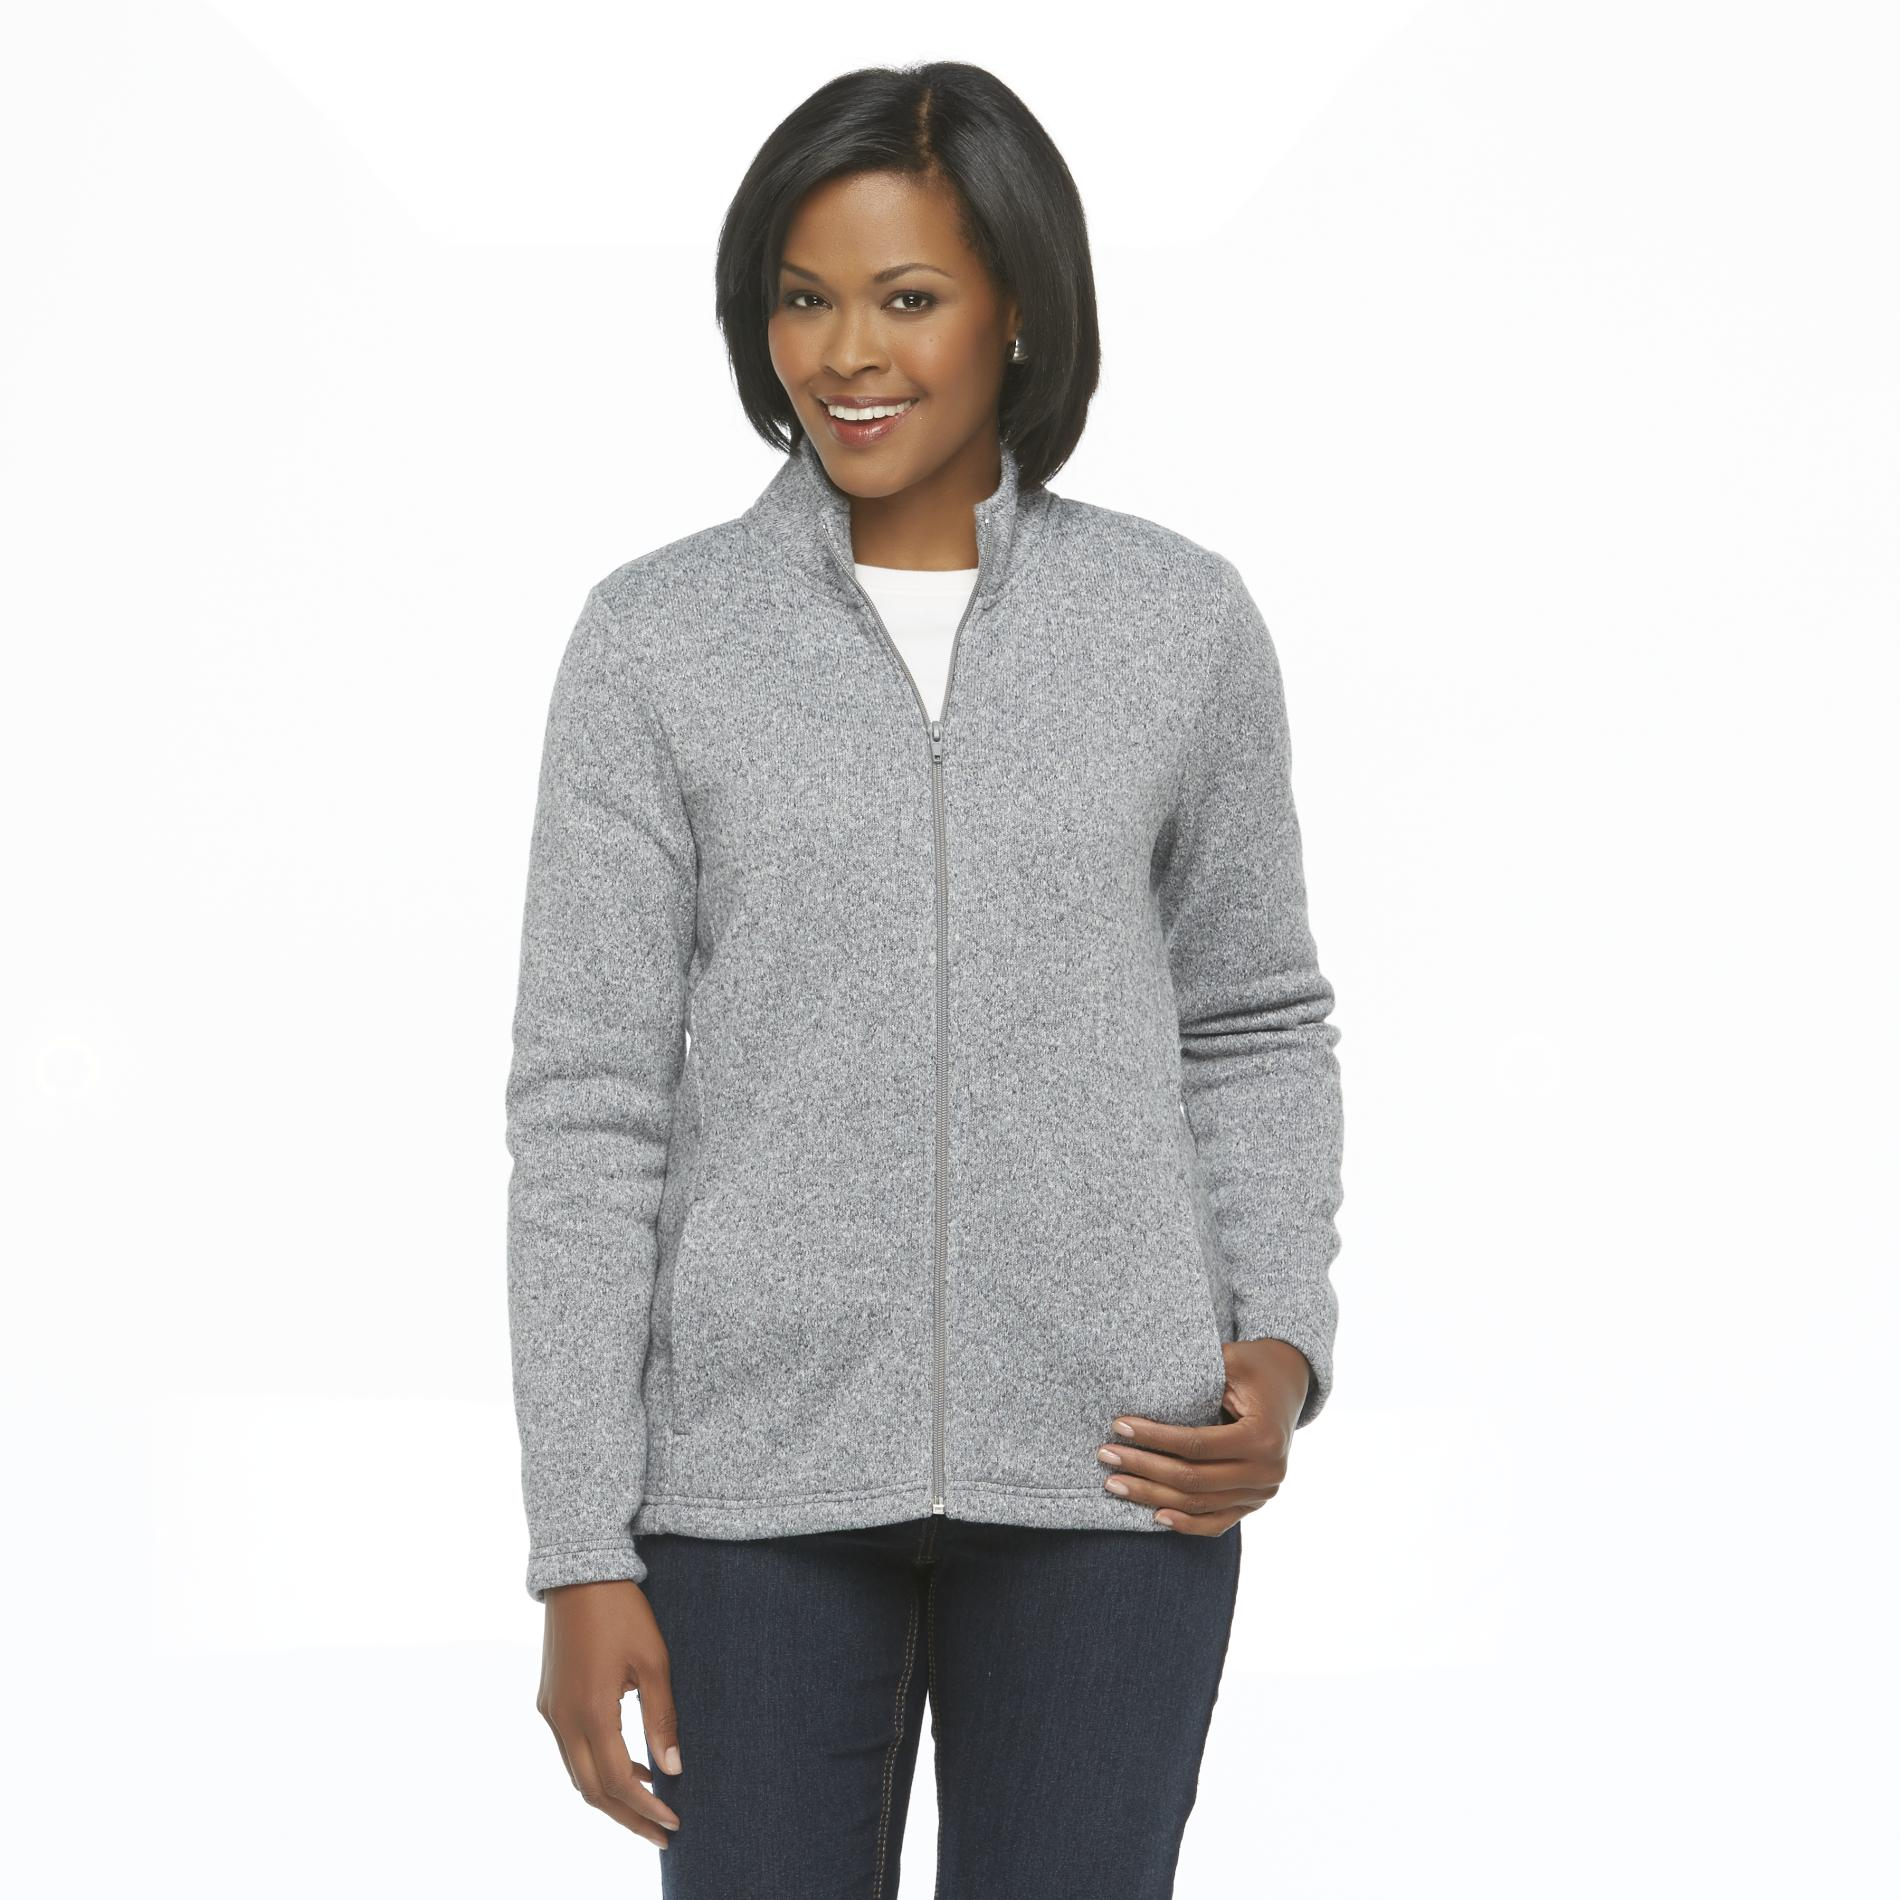 Basic Editions Women's Sweater Jacket - Heathered at Kmart.com